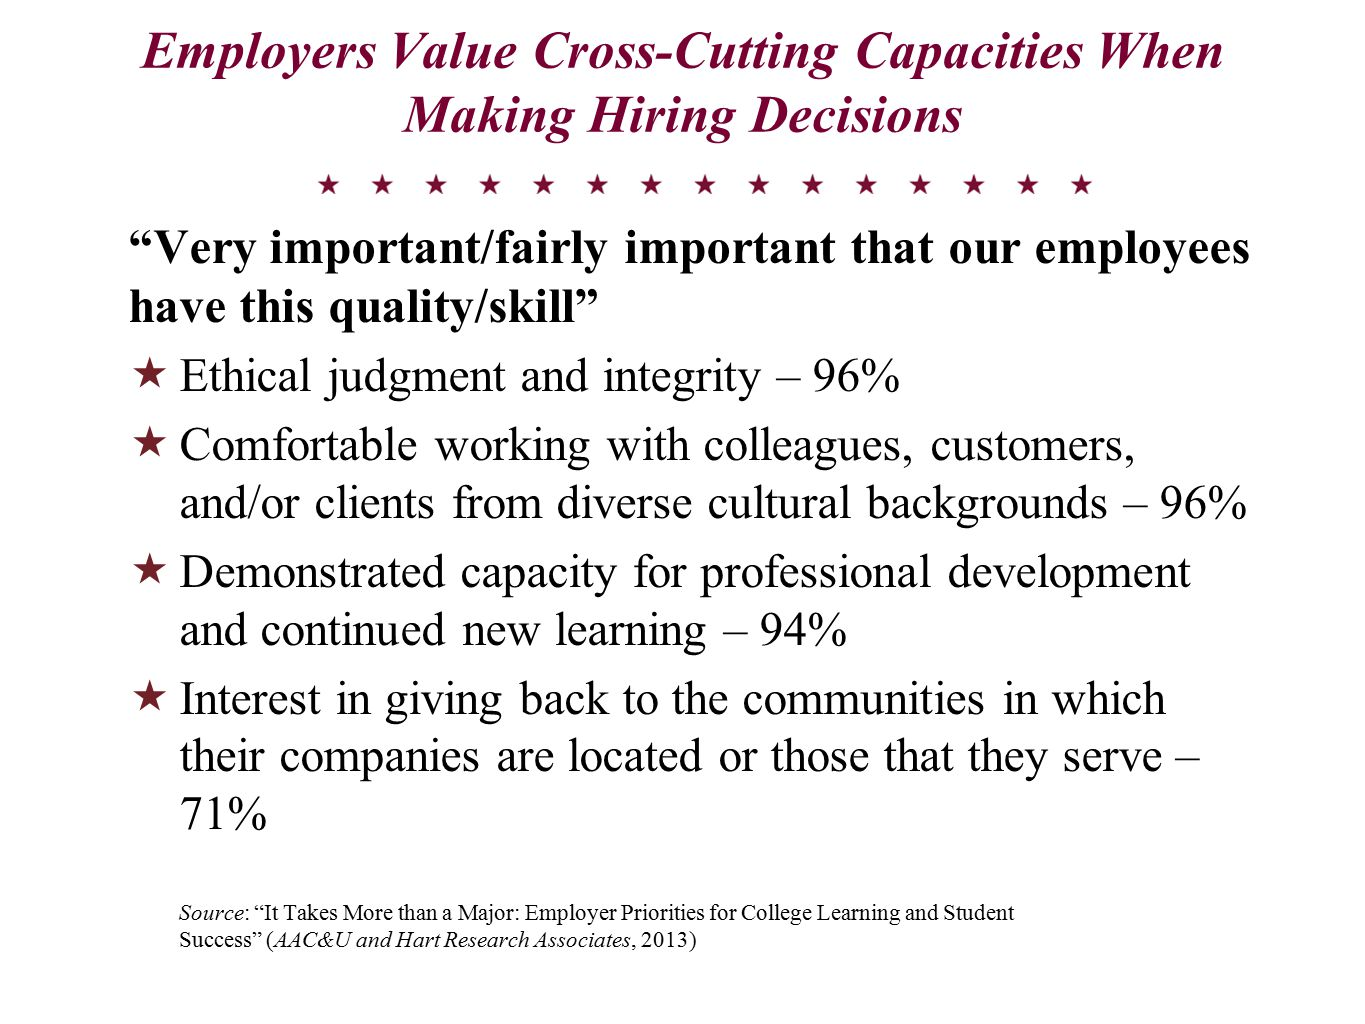 Employers Value Cross-Cutting Capacities When Making Hiring Decisions Very important/fairly important that our employees have this quality/skill  Ethical judgment and integrity – 96%  Comfortable working with colleagues, customers, and/or clients from diverse cultural backgrounds – 96%  Demonstrated capacity for professional development and continued new learning – 94%  Interest in giving back to the communities in which their companies are located or those that they serve – 71% Source: It Takes More than a Major: Employer Priorities for College Learning and Student Success (AAC&U and Hart Research Associates, 2013)